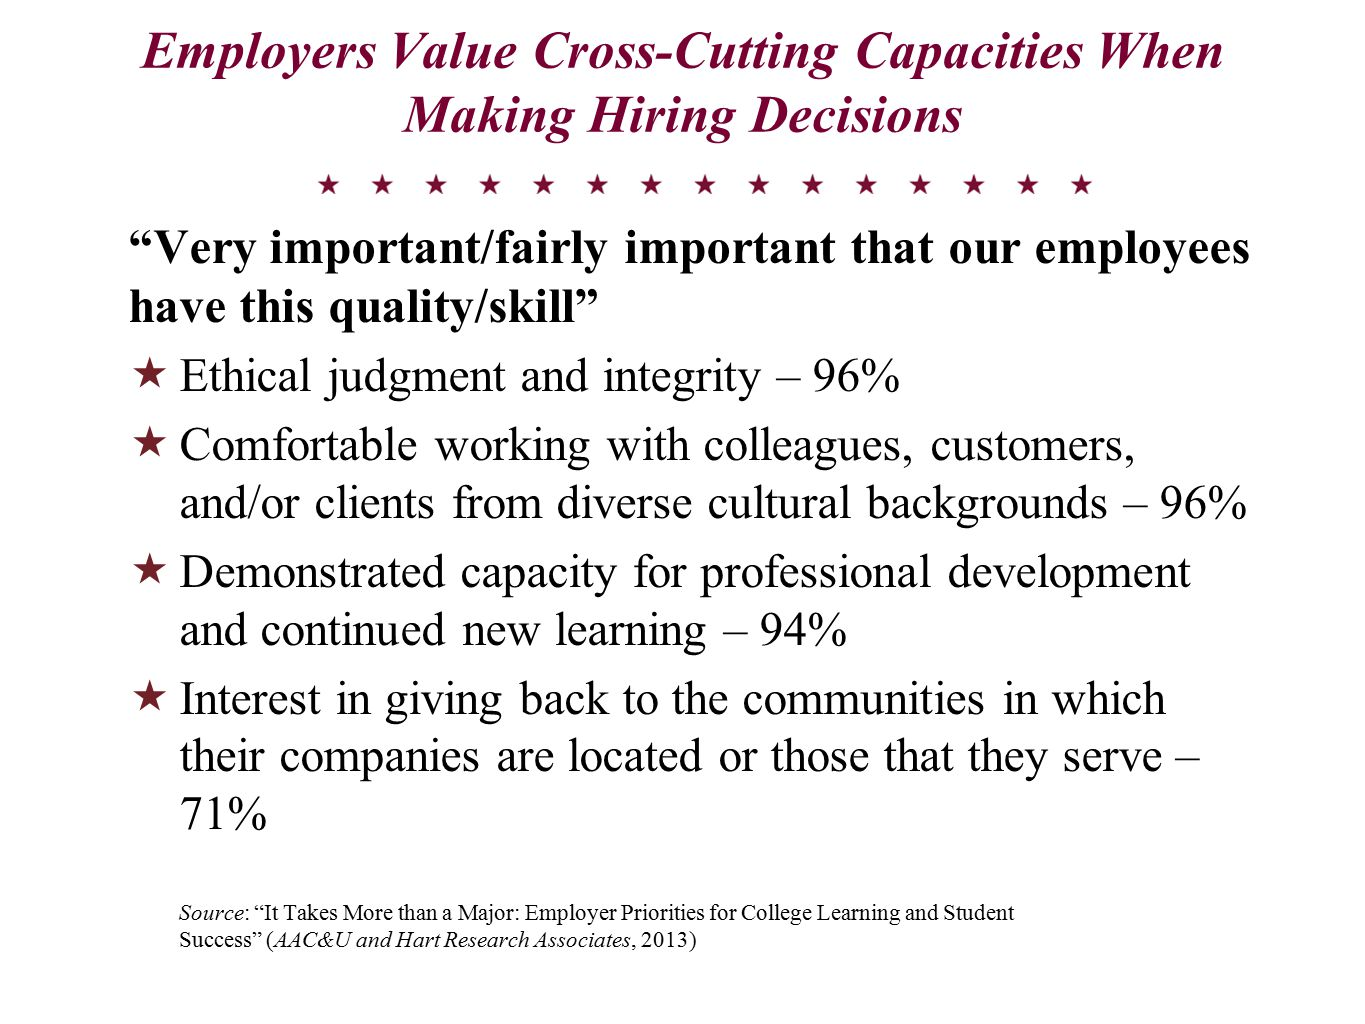 Employers Value Cross-Cutting Capacities When Making Hiring Decisions Very important/fairly important that our employees have this quality/skill  Ethical judgment and integrity – 96%  Comfortable working with colleagues, customers, and/or clients from diverse cultural backgrounds – 96%  Demonstrated capacity for professional development and continued new learning – 94%  Interest in giving back to the communities in which their companies are located or those that they serve – 71% Source: It Takes More than a Major: Employer Priorities for College Learning and Student Success (AAC&U and Hart Research Associates, 2013)